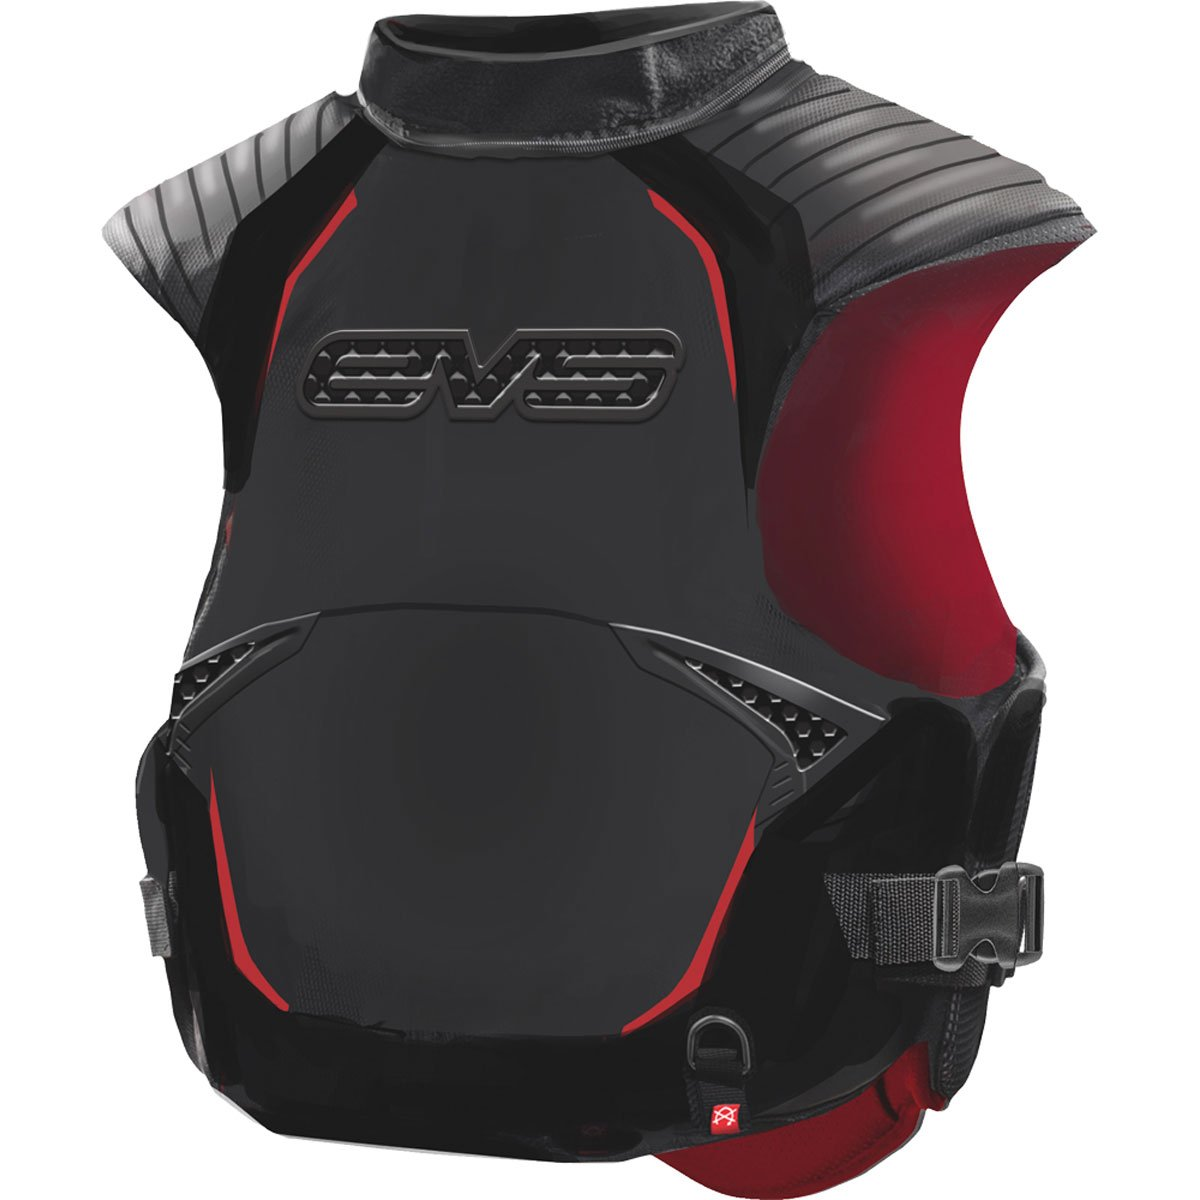 EVS SV2 Pro Trail Adult Snowmobile Protective Gear - Black/Red / Medium/Large